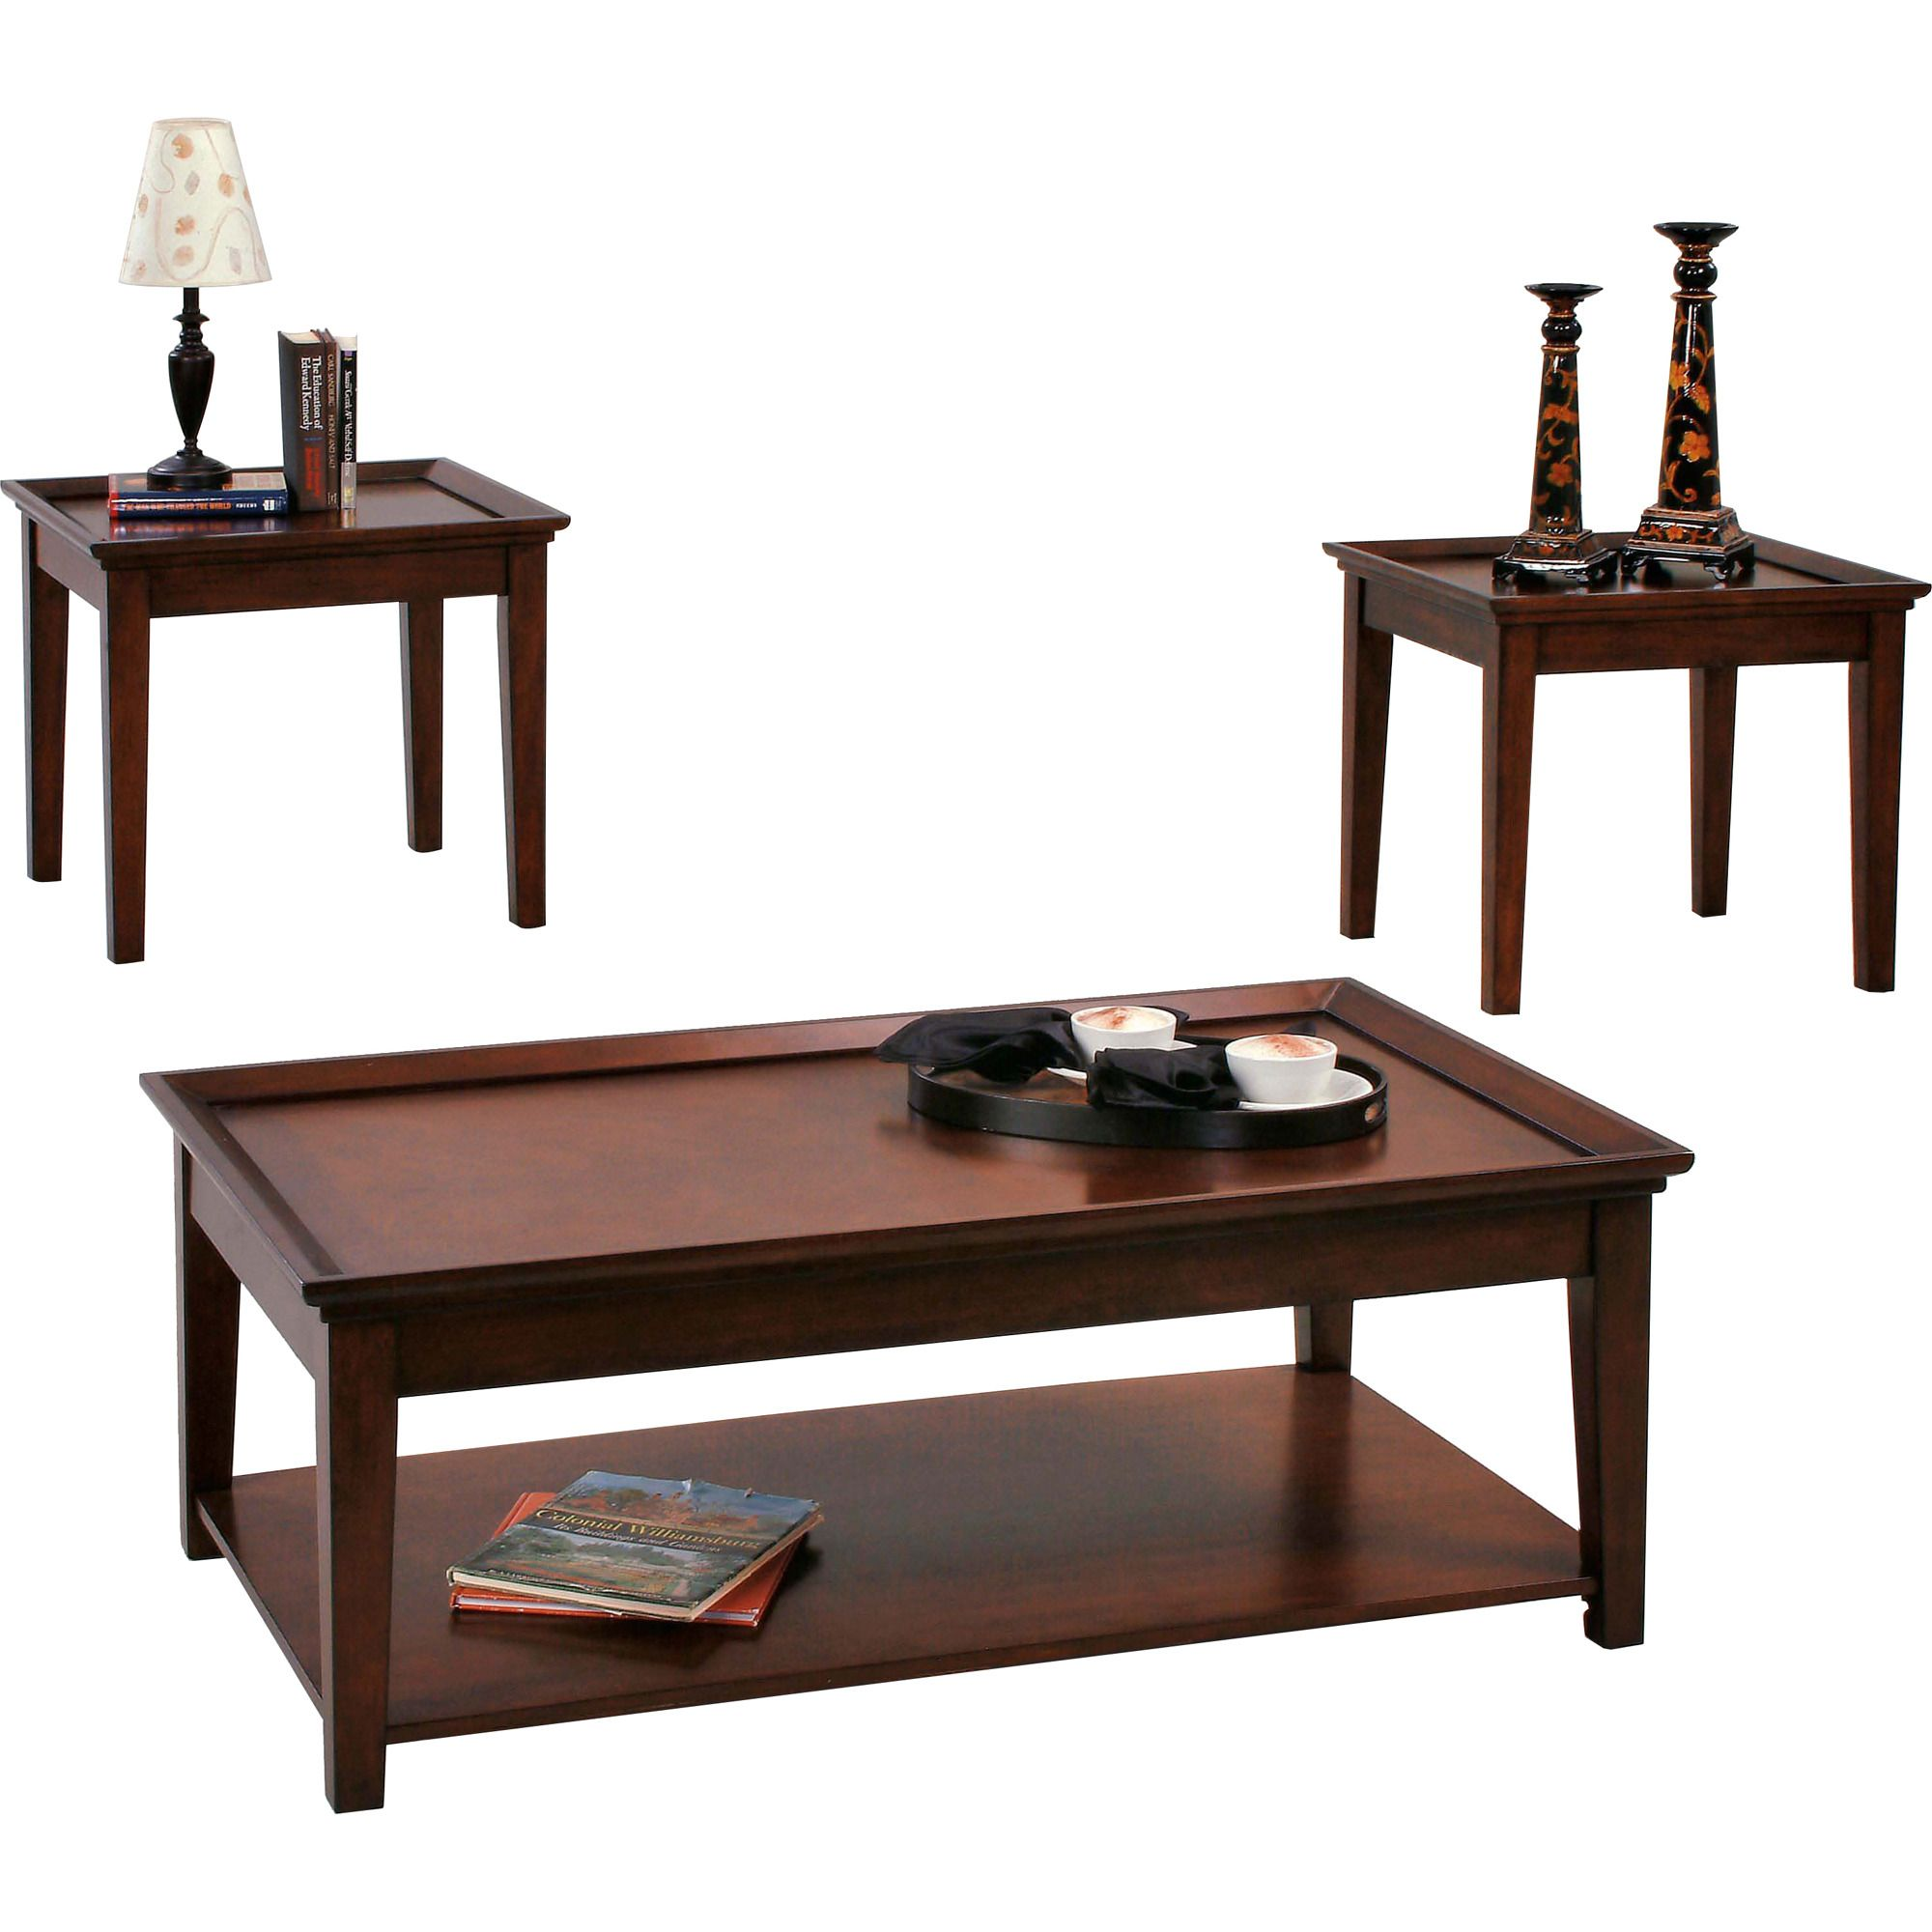 Encore 3 Piece Coffee Table Set In Brown By Progressive Furniture Home Gallery Stores Progressive Furniture Coffee Table 3 Piece Coffee Table Set [ 2000 x 2000 Pixel ]